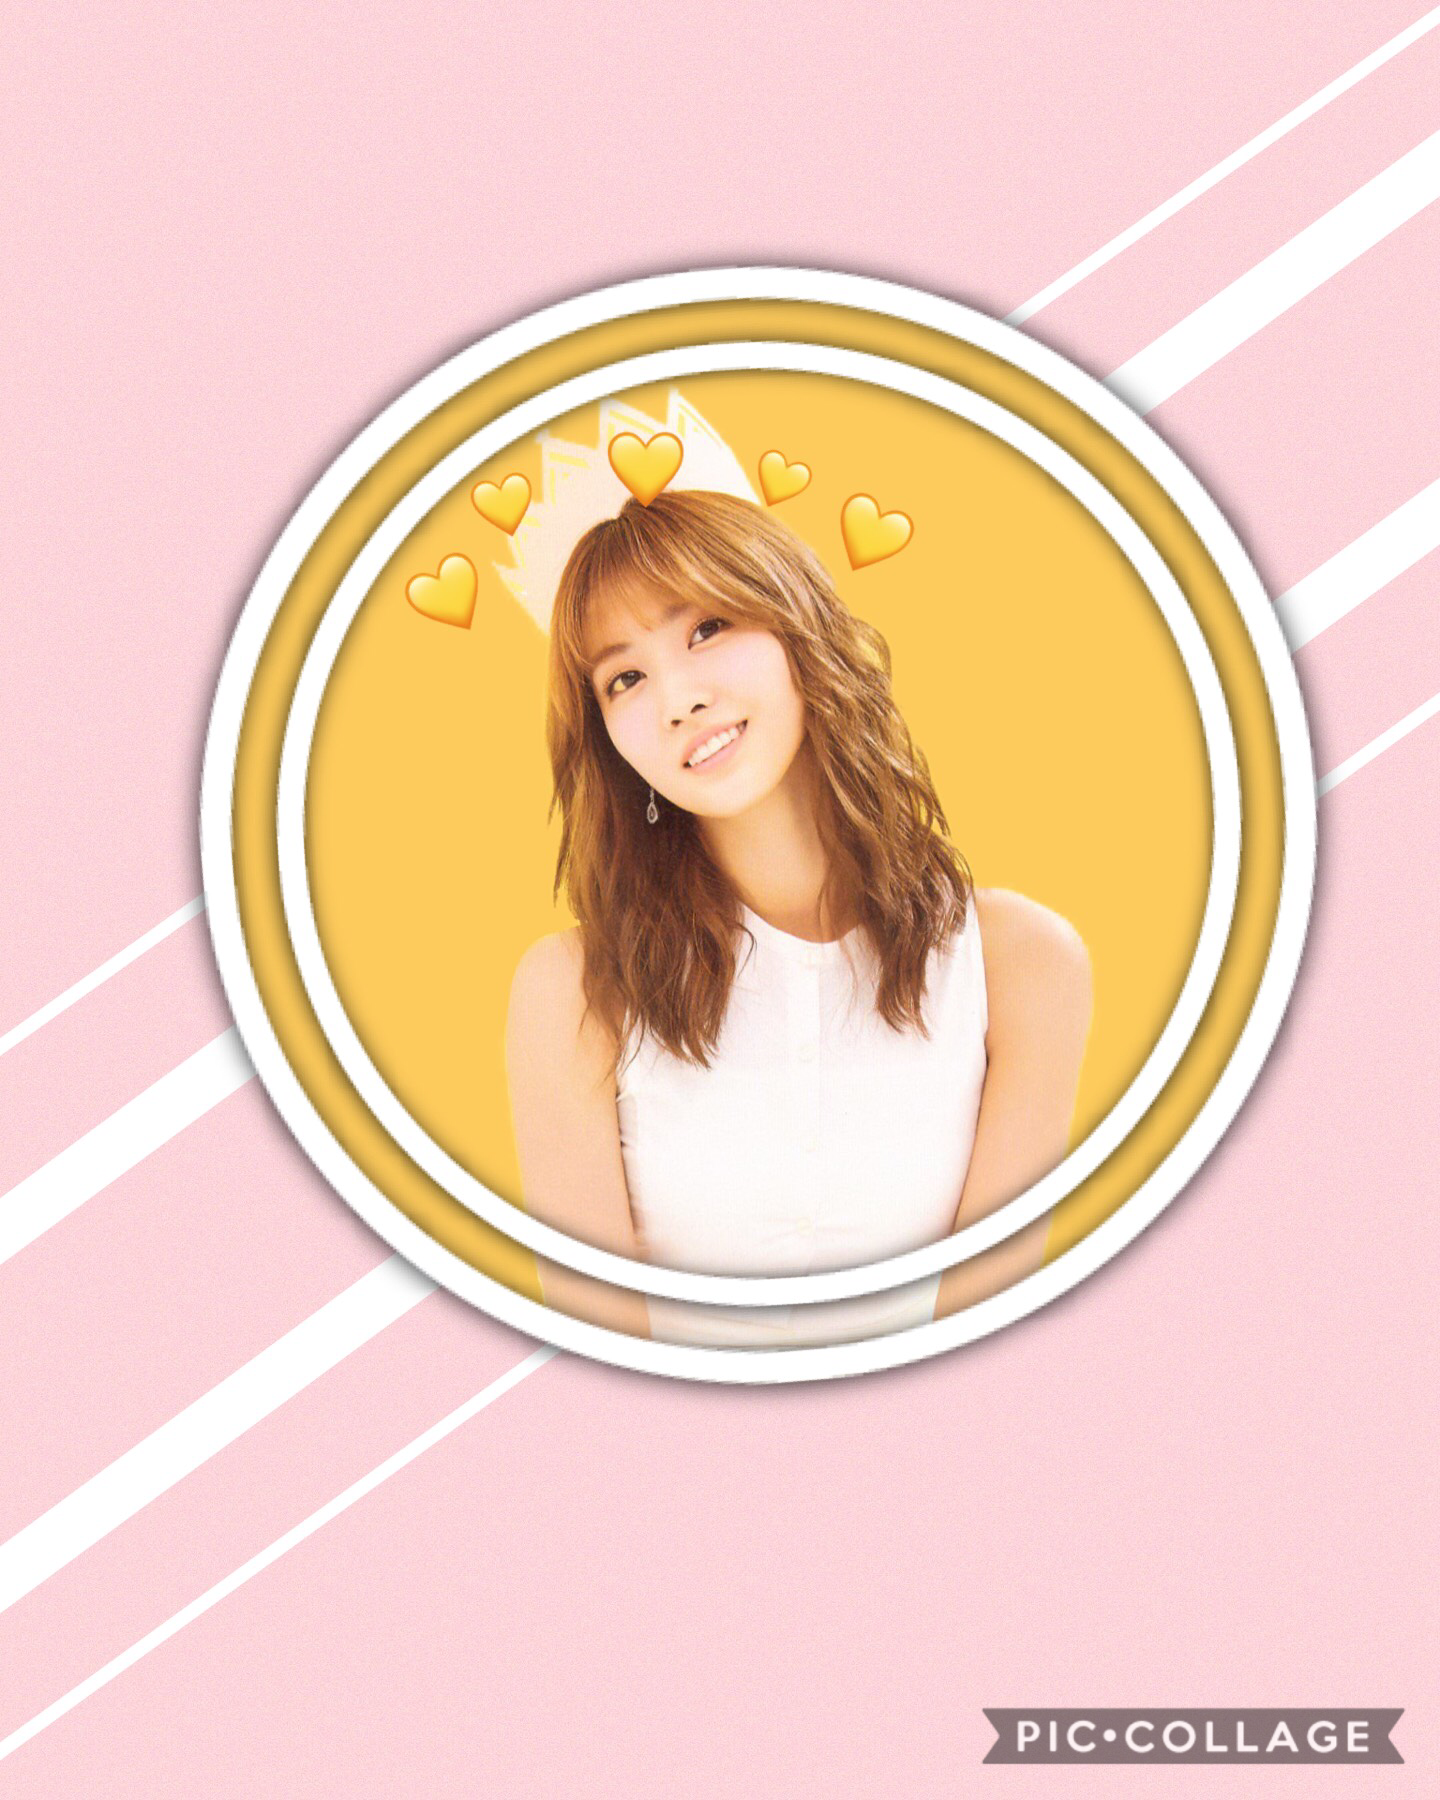 """I will try to be more positive"" The circle things are pretty cool LOL MO! MO! RING!"